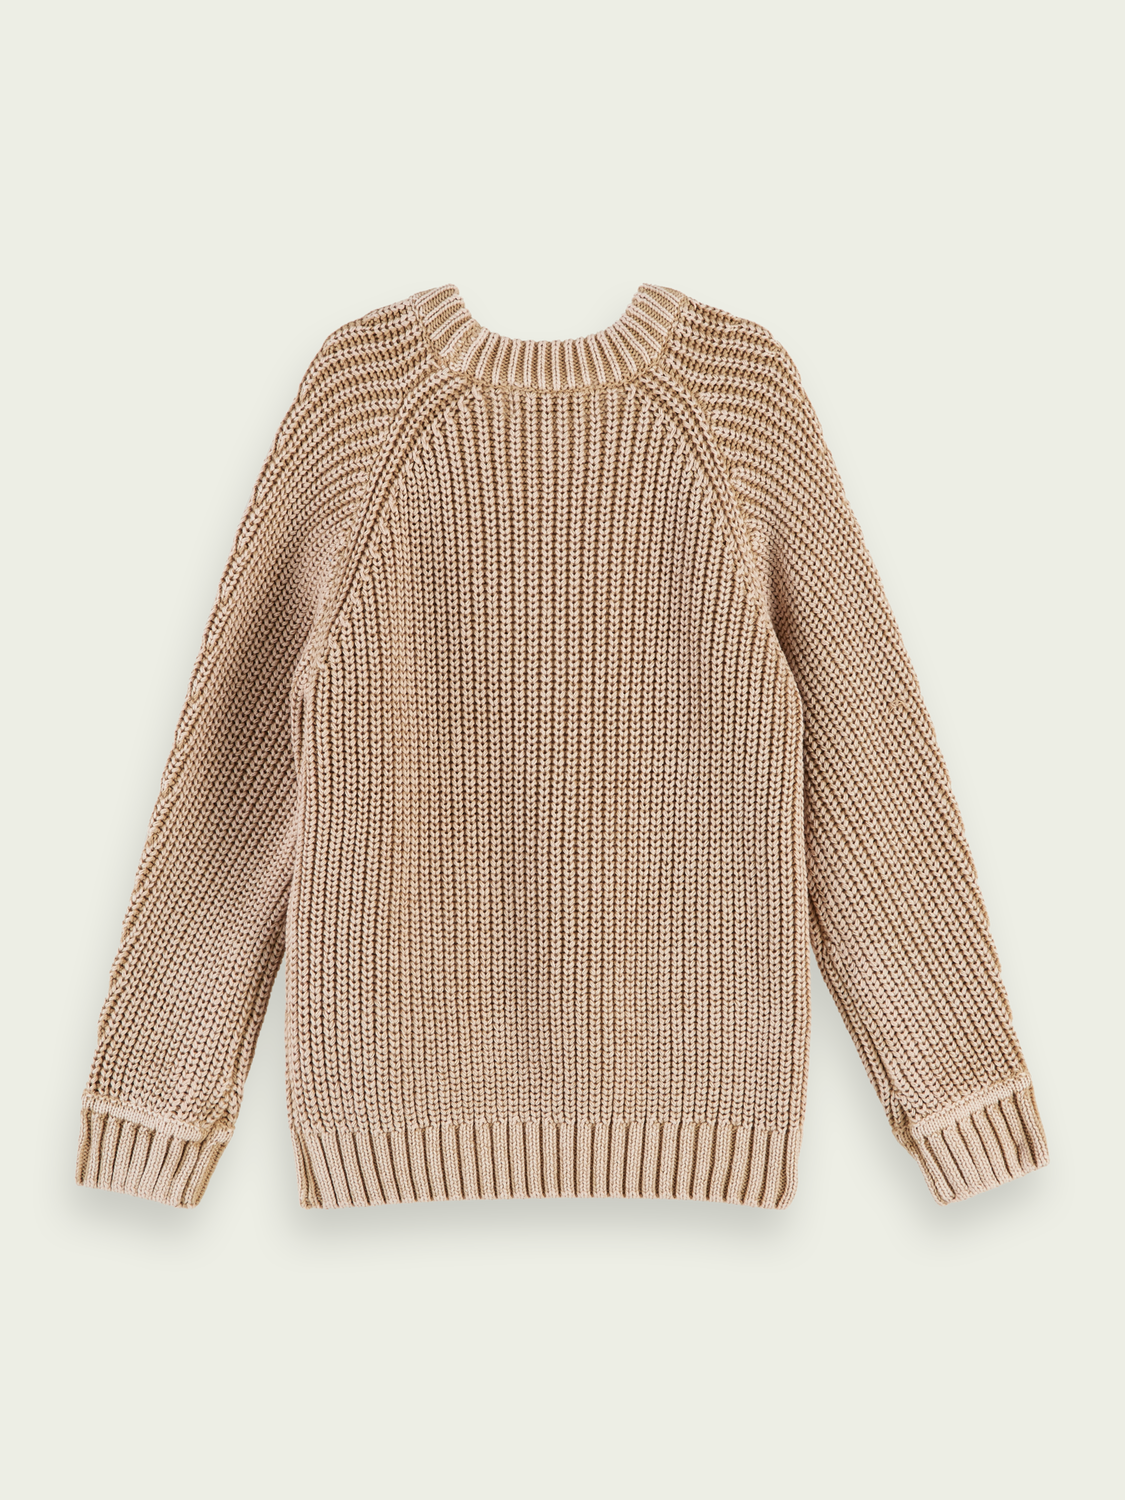 Kids Structured knit cotton pullover